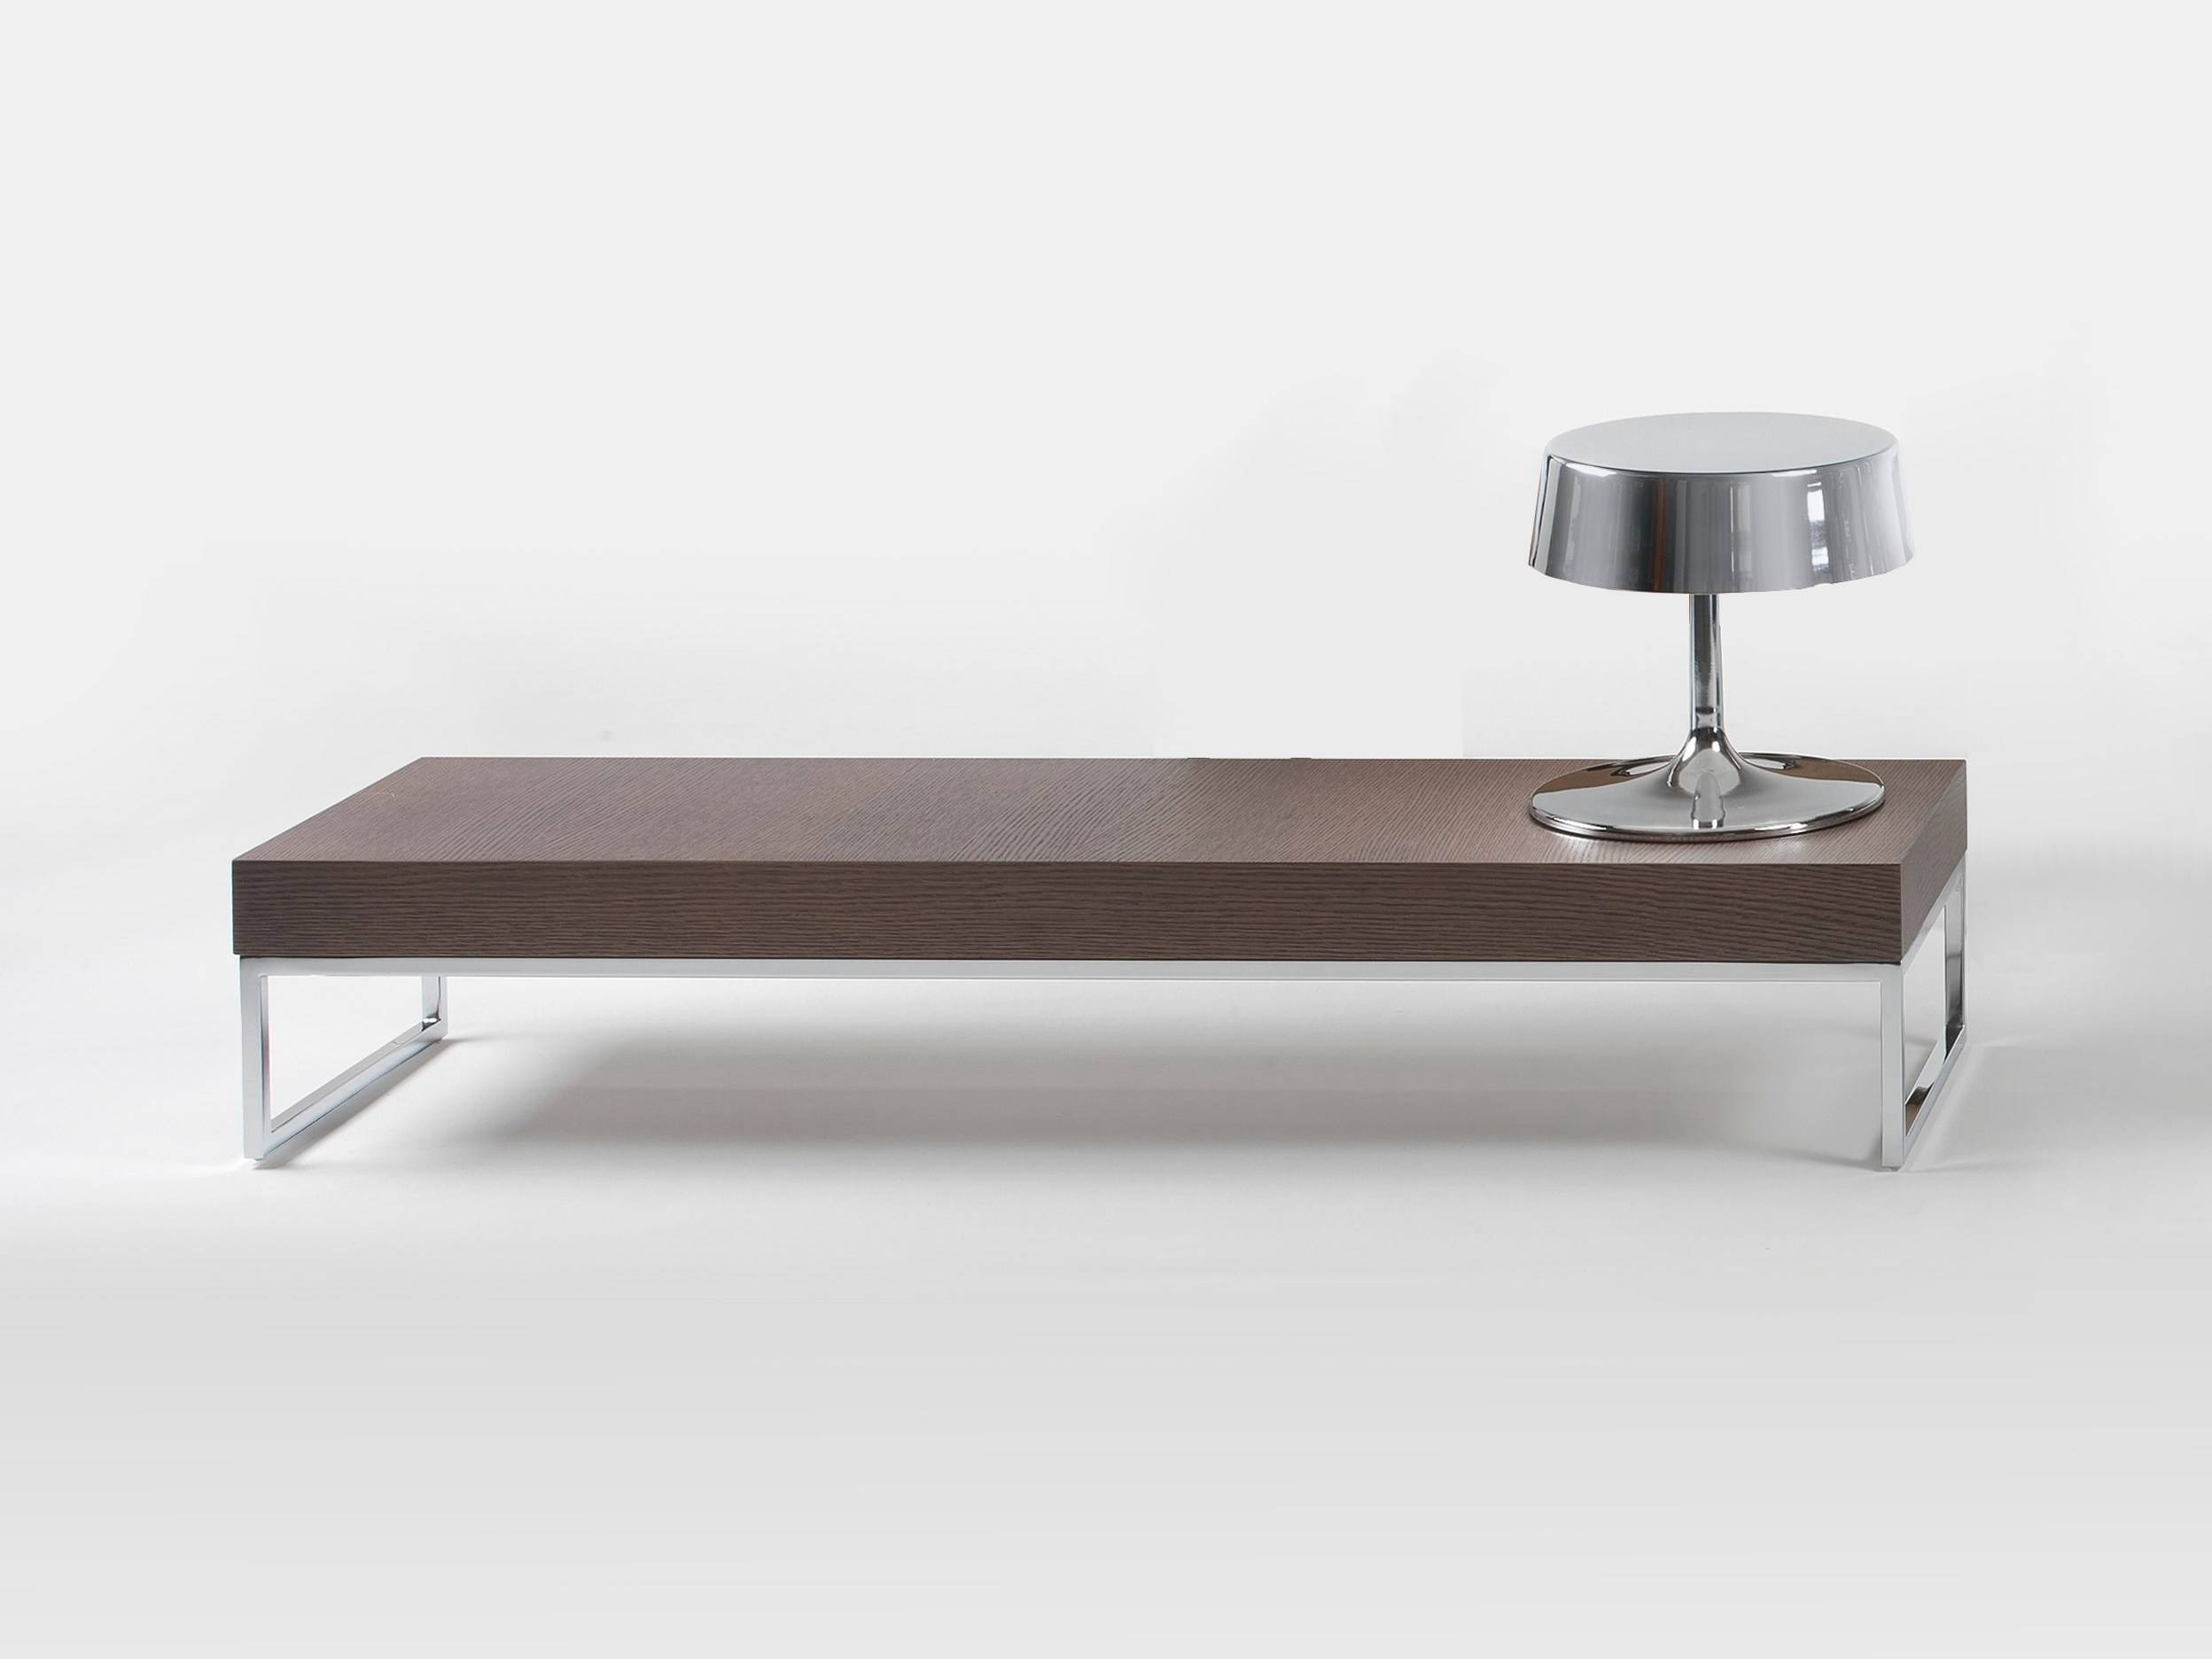 Low Profile Coffee Table – Low Profile Coffee Table Uk, Low within Large Low Coffee Tables (Image 13 of 15)